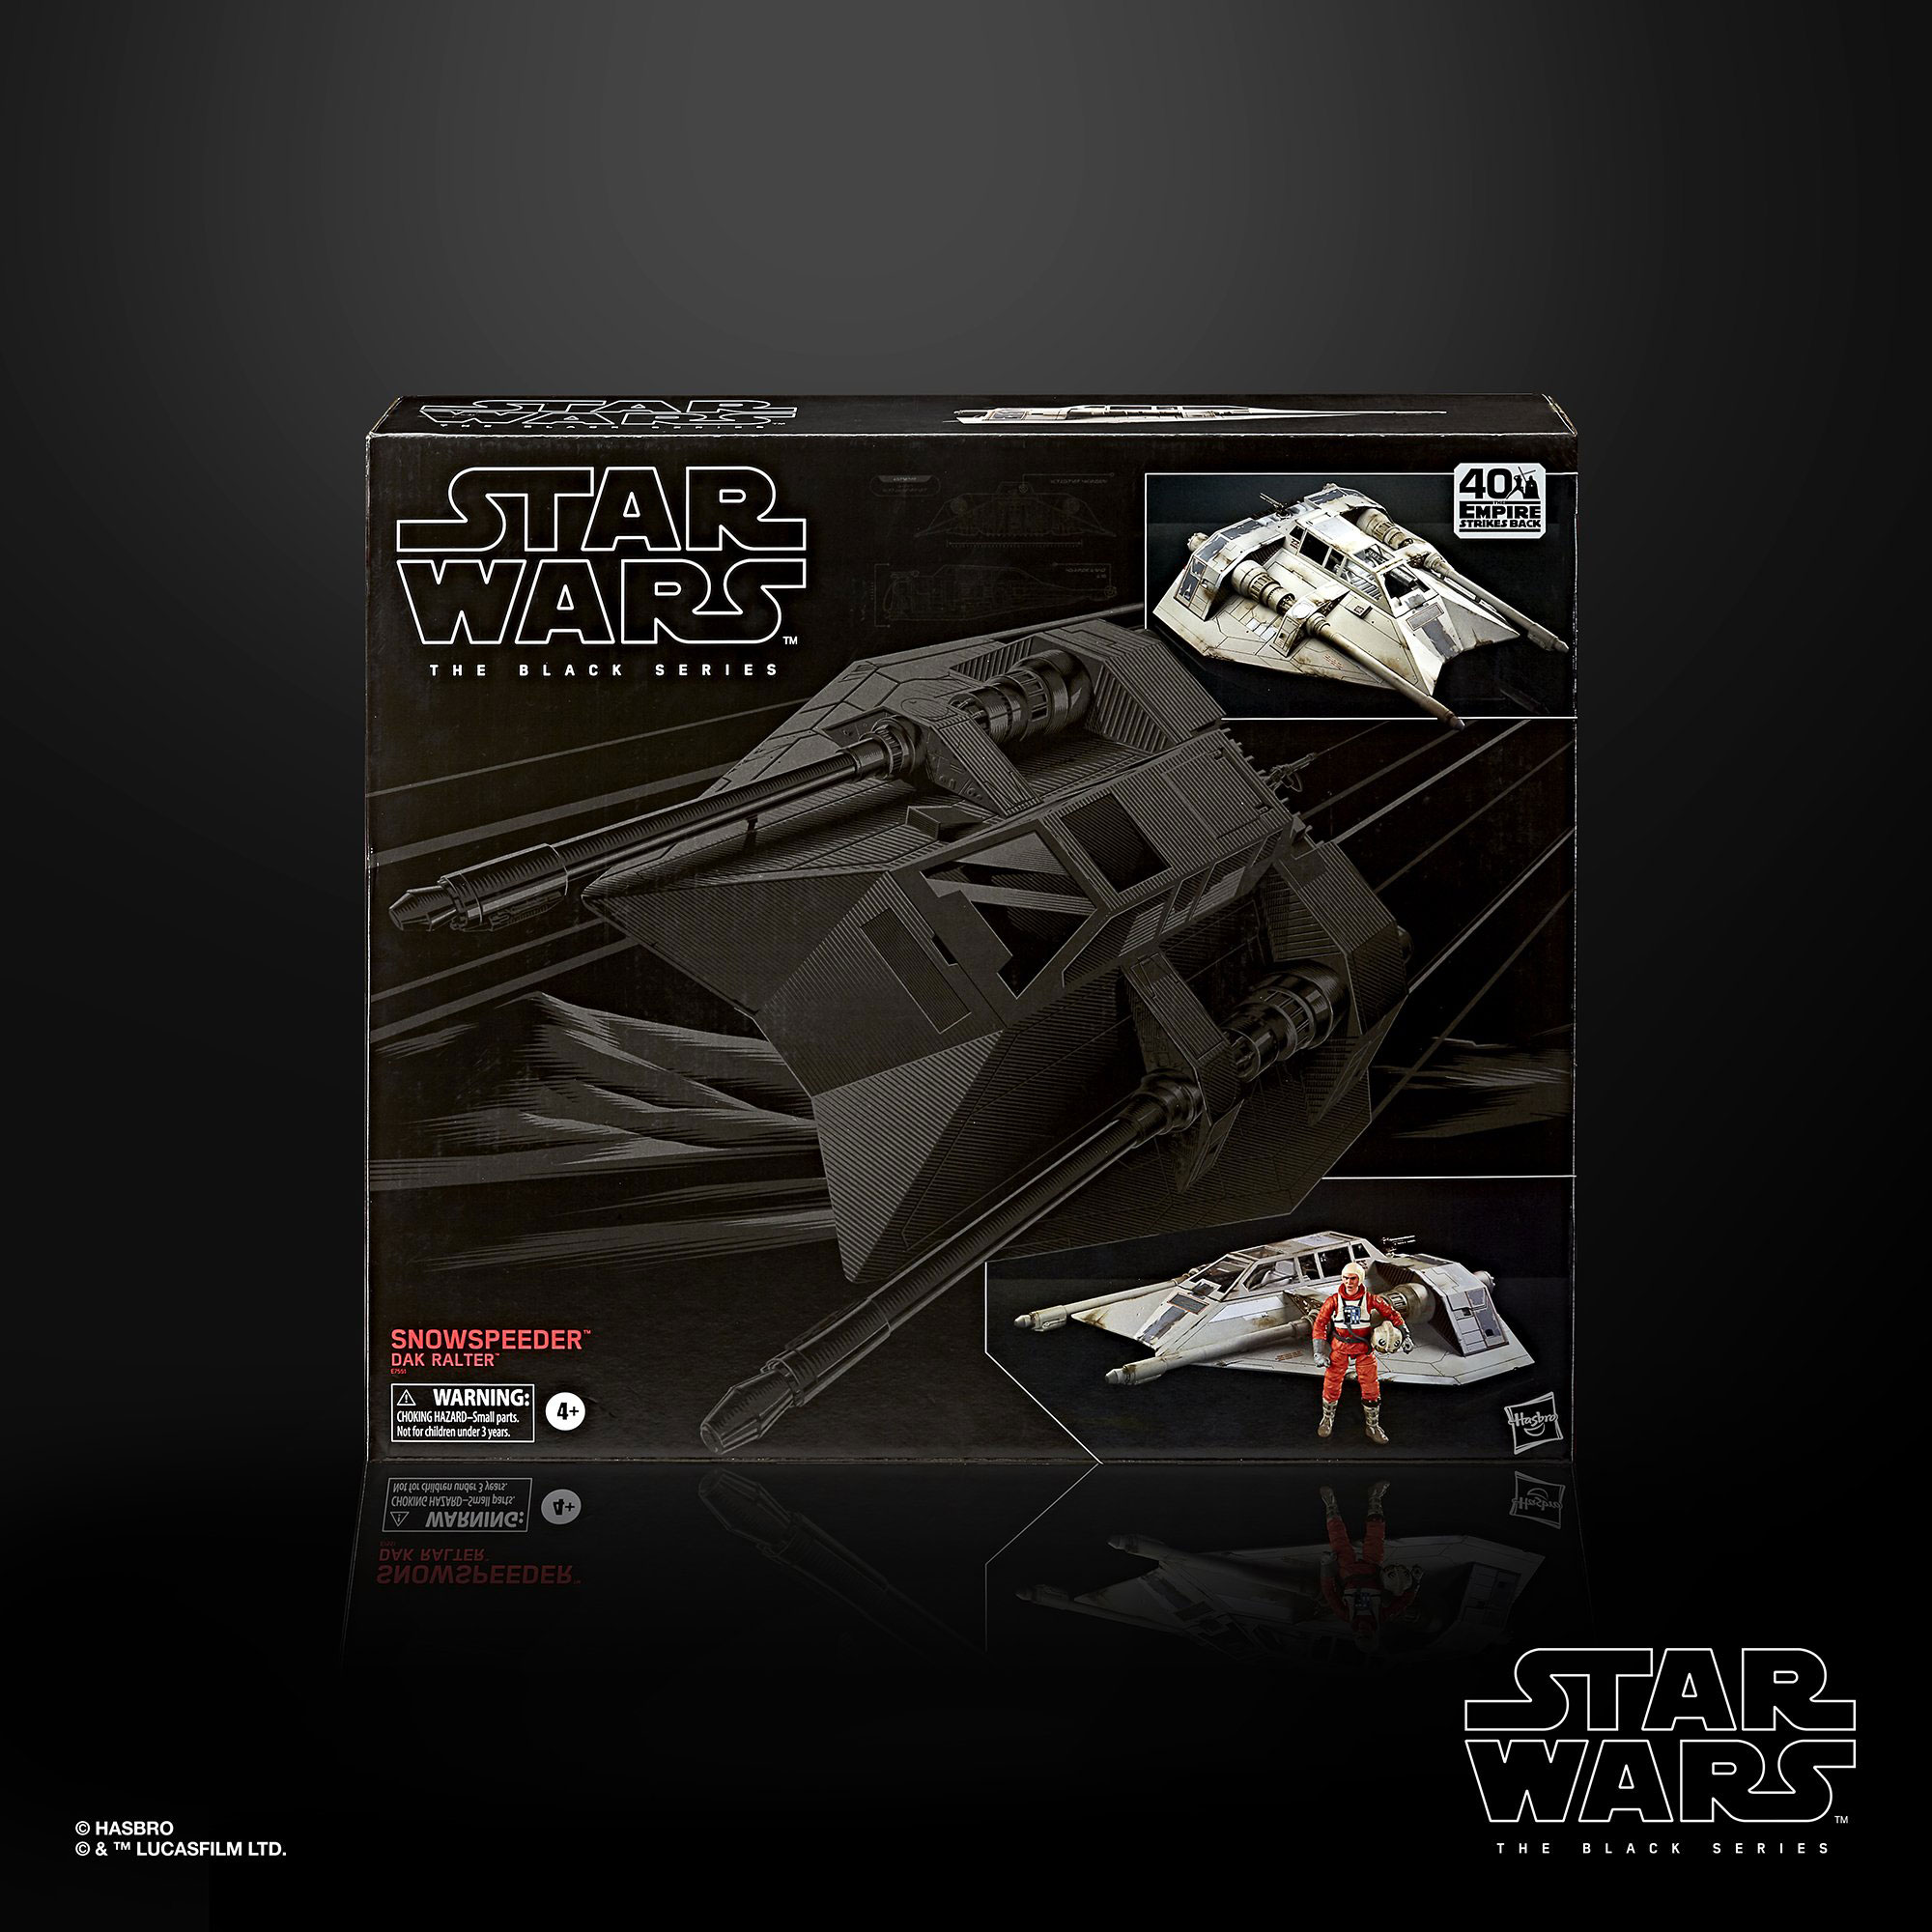 star-wars-black-series-snowspeeder-and-dak-ralter-figure-6